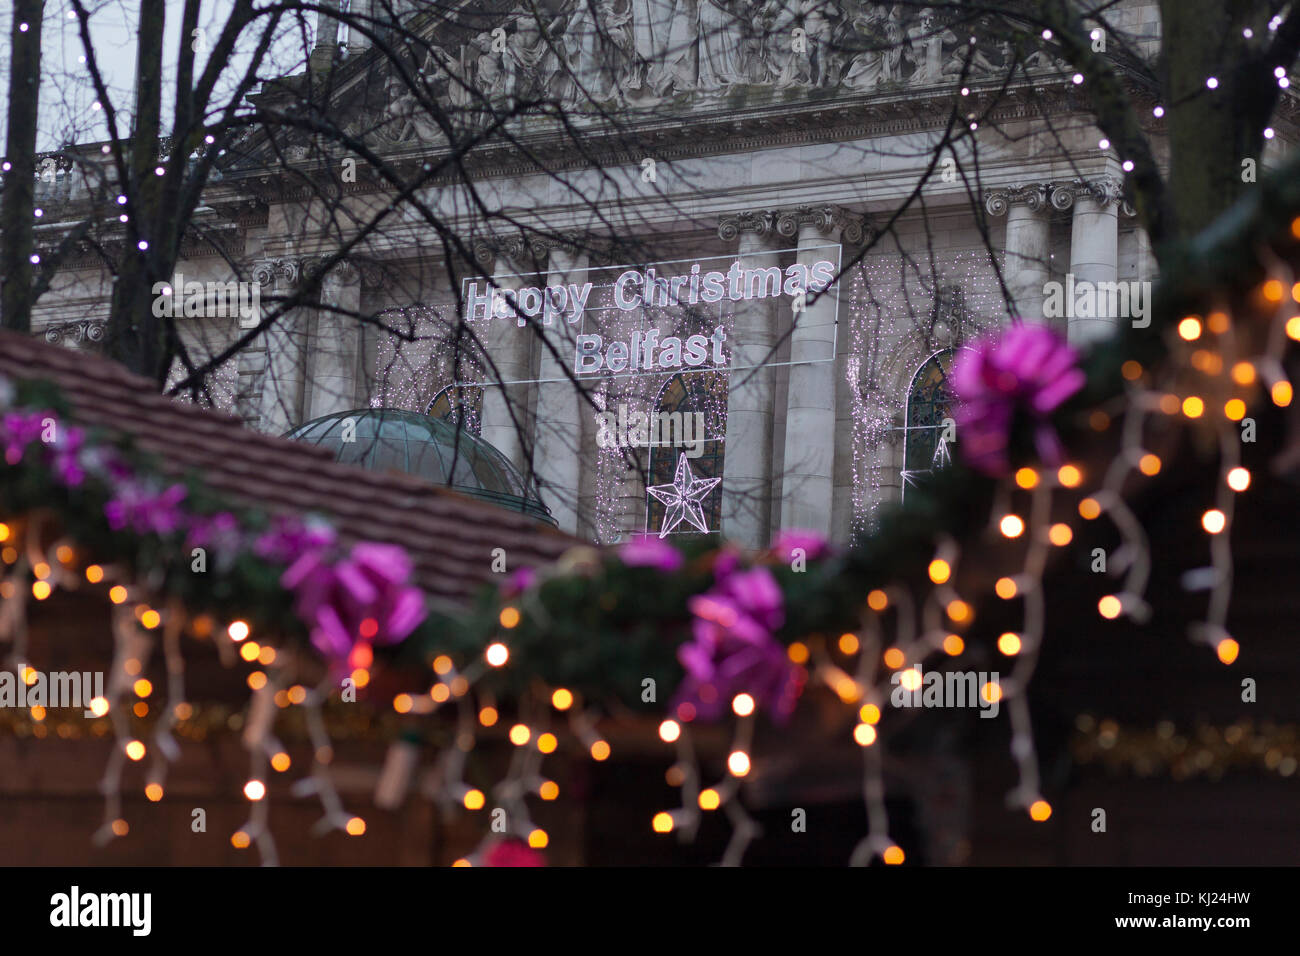 City Hall, Belfast Northern Ireland 21st November 2017. Belfast city council have hung Happy Christmas Decorations - Stock Image